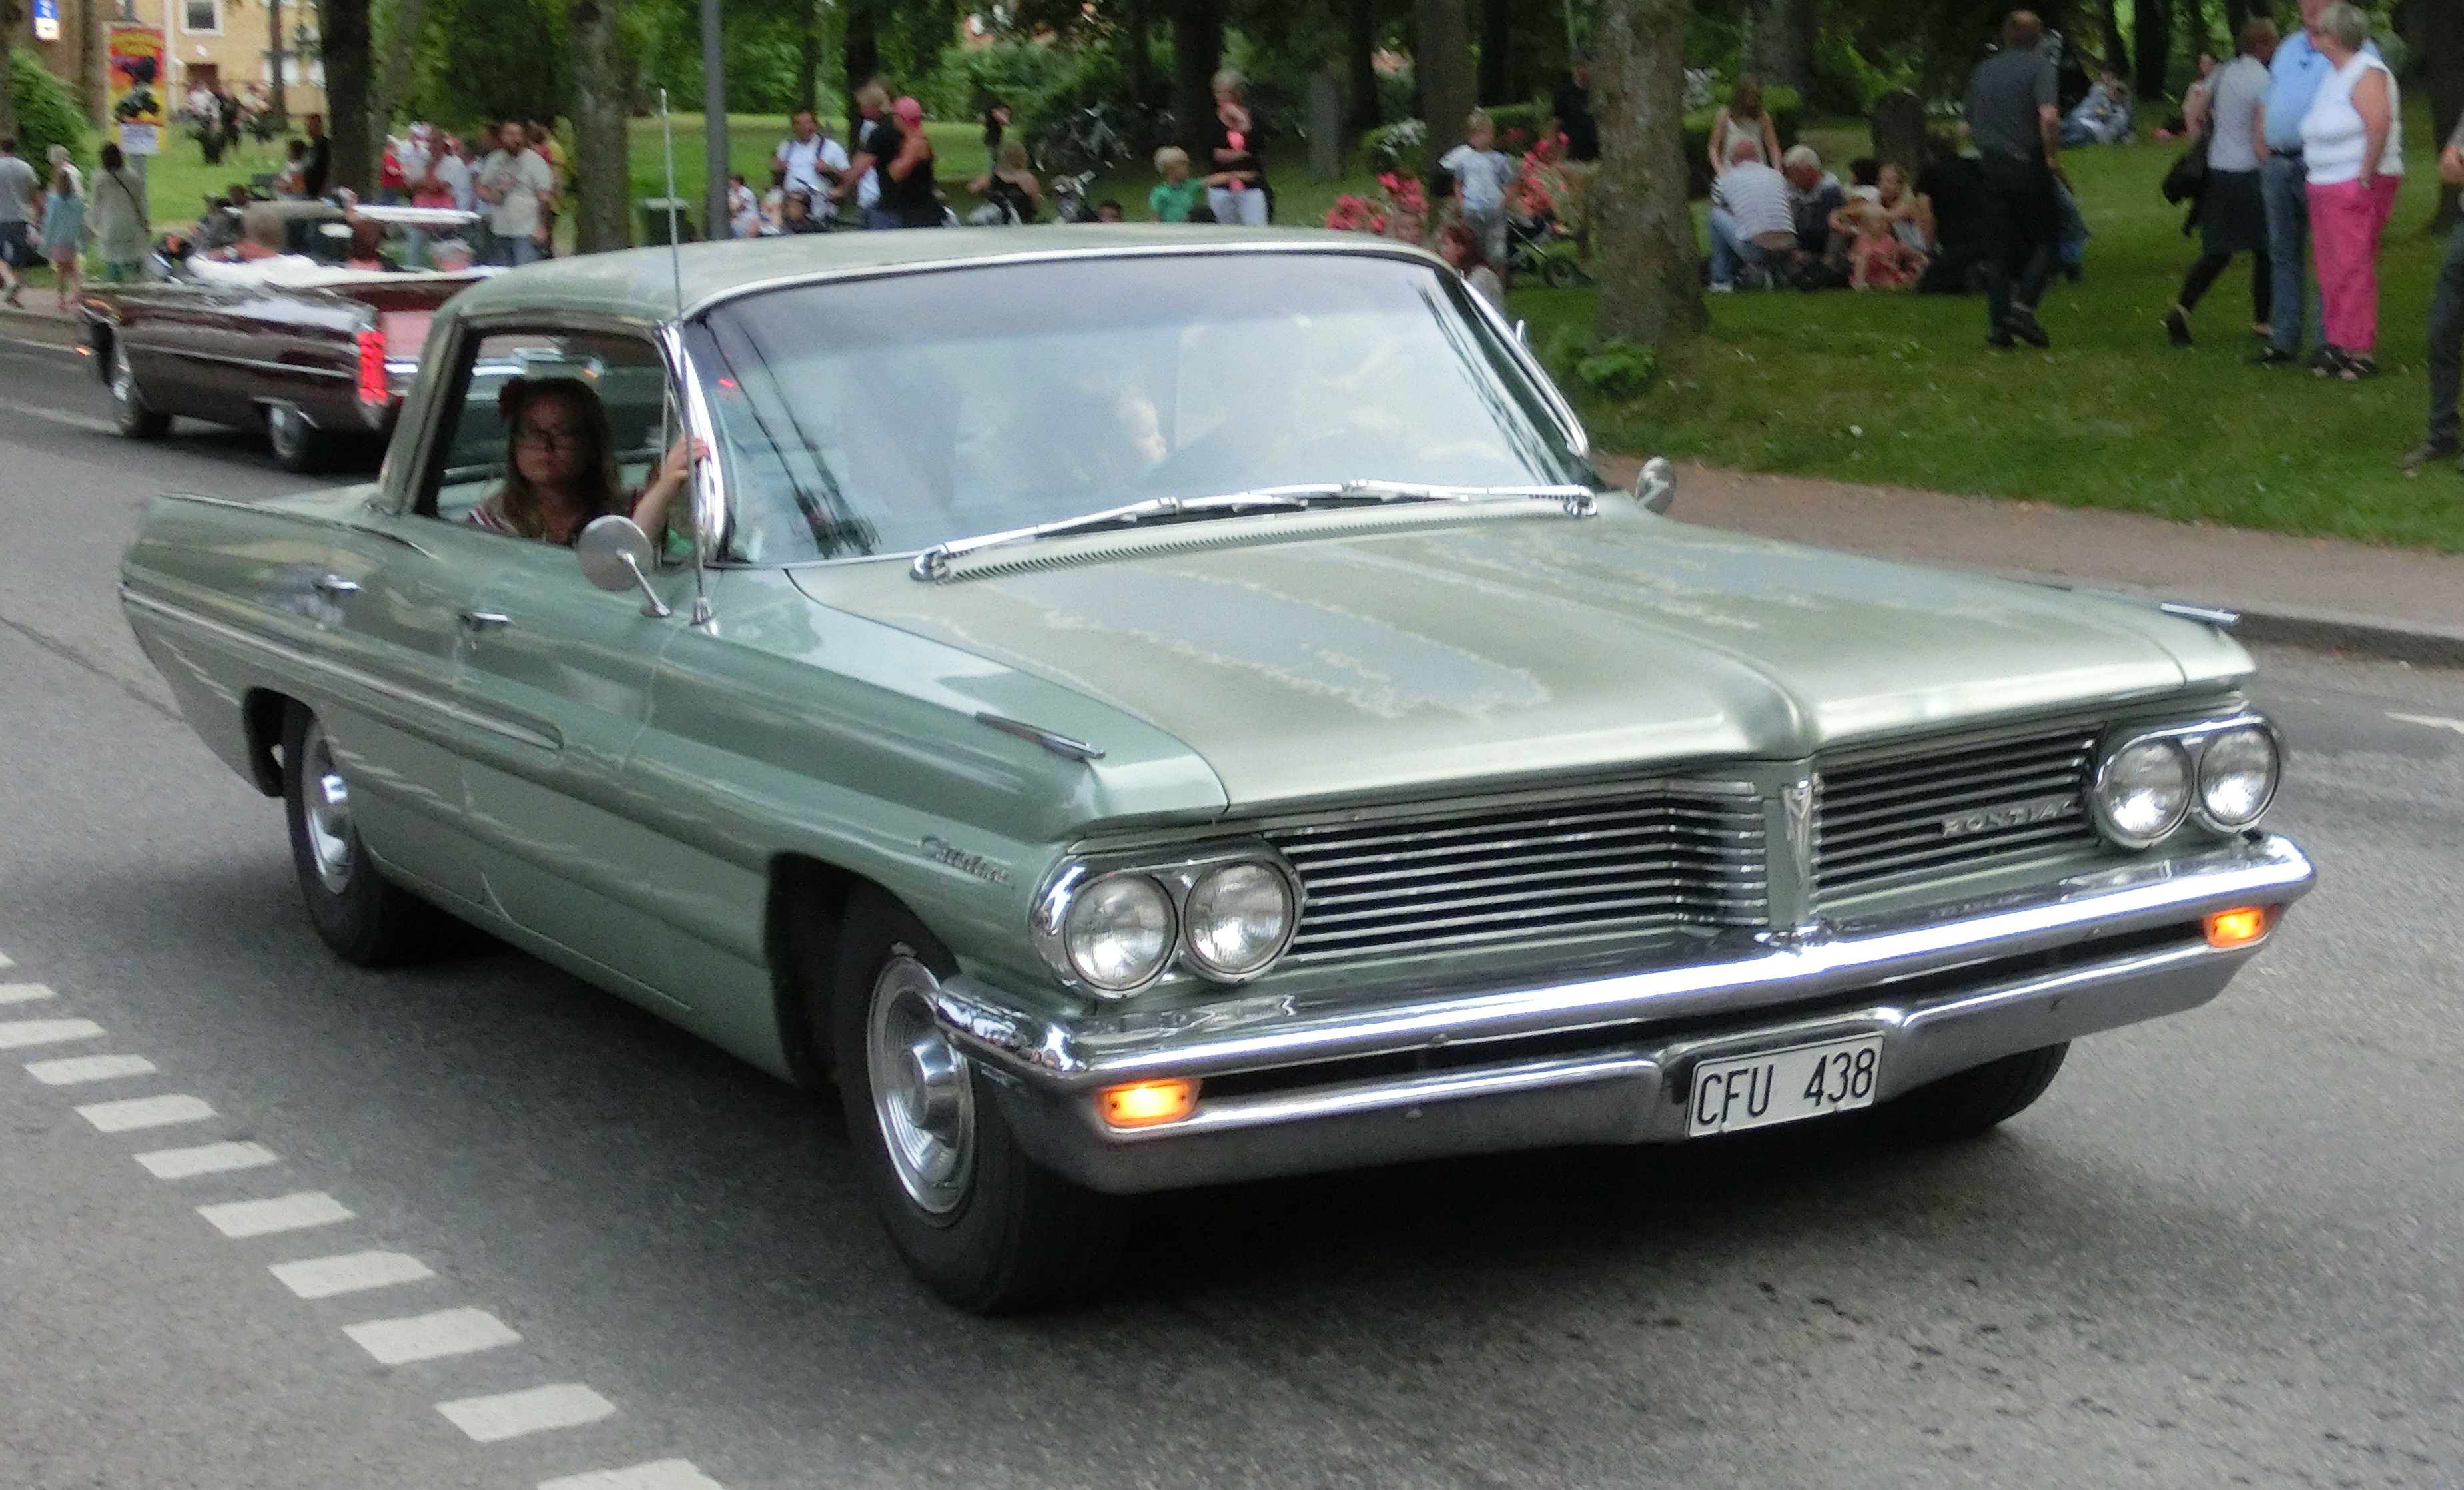 Pontiac Catalina I 1959 - 1960 Sedan-Hardtop #5